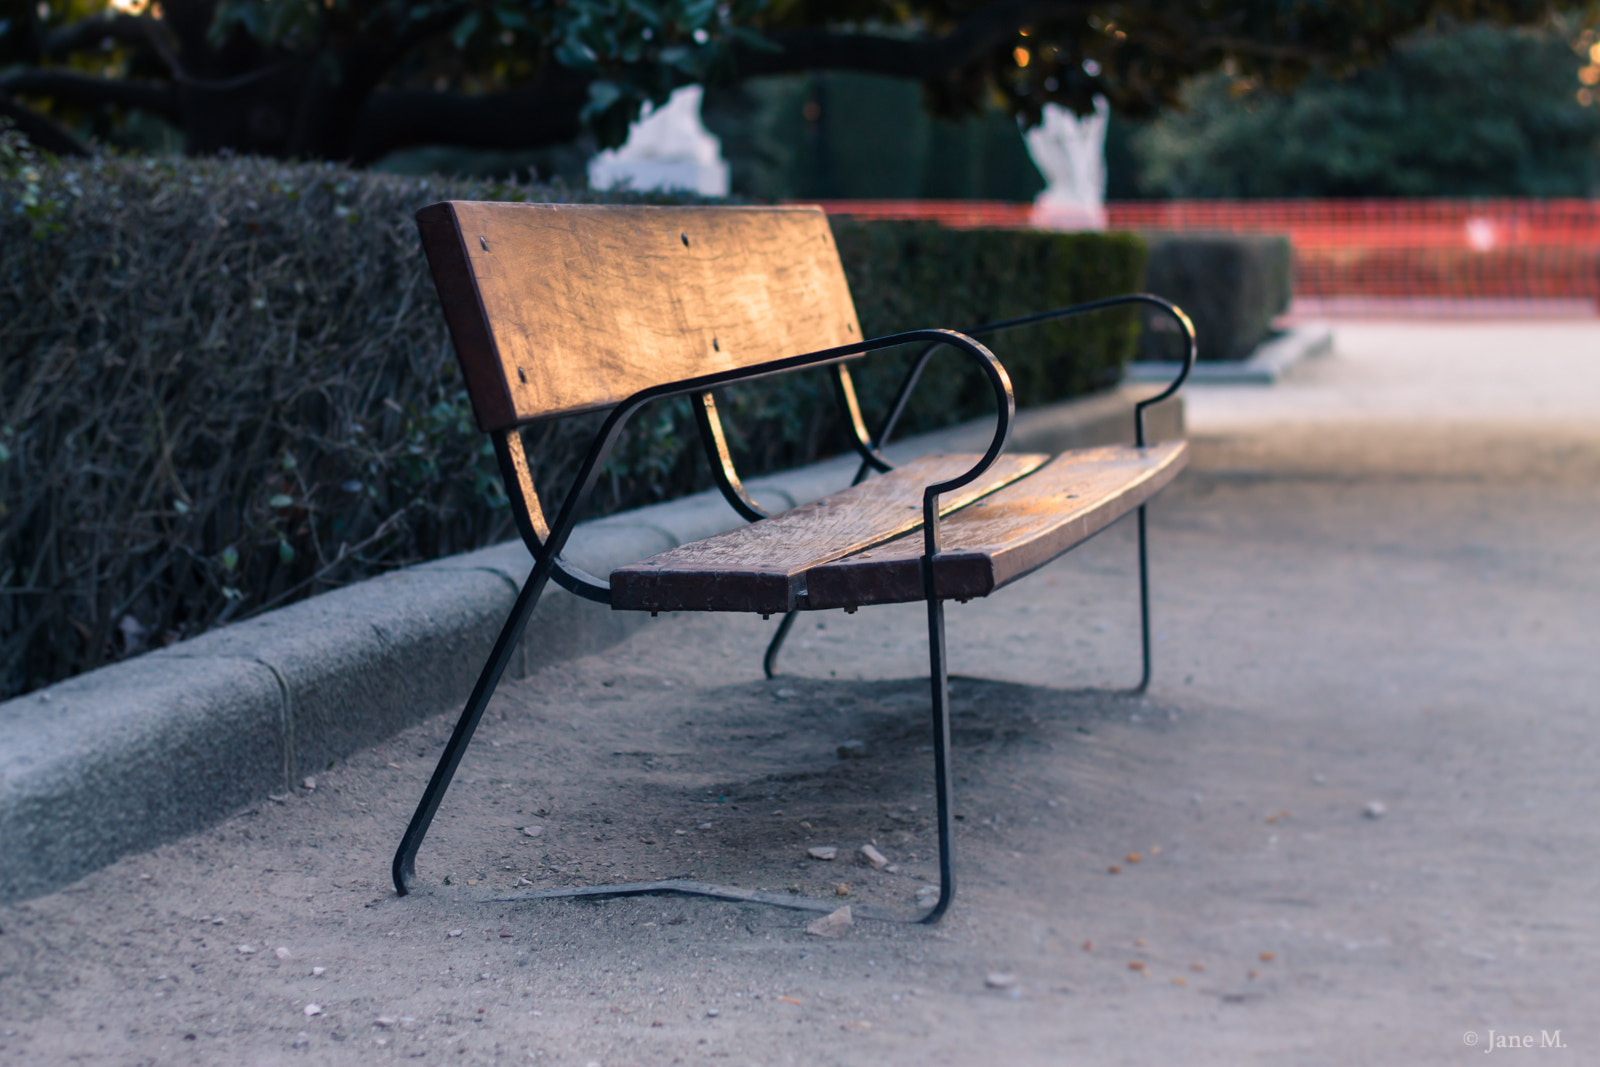 Photograph Bench with a View by Jane Terekhov on 500px